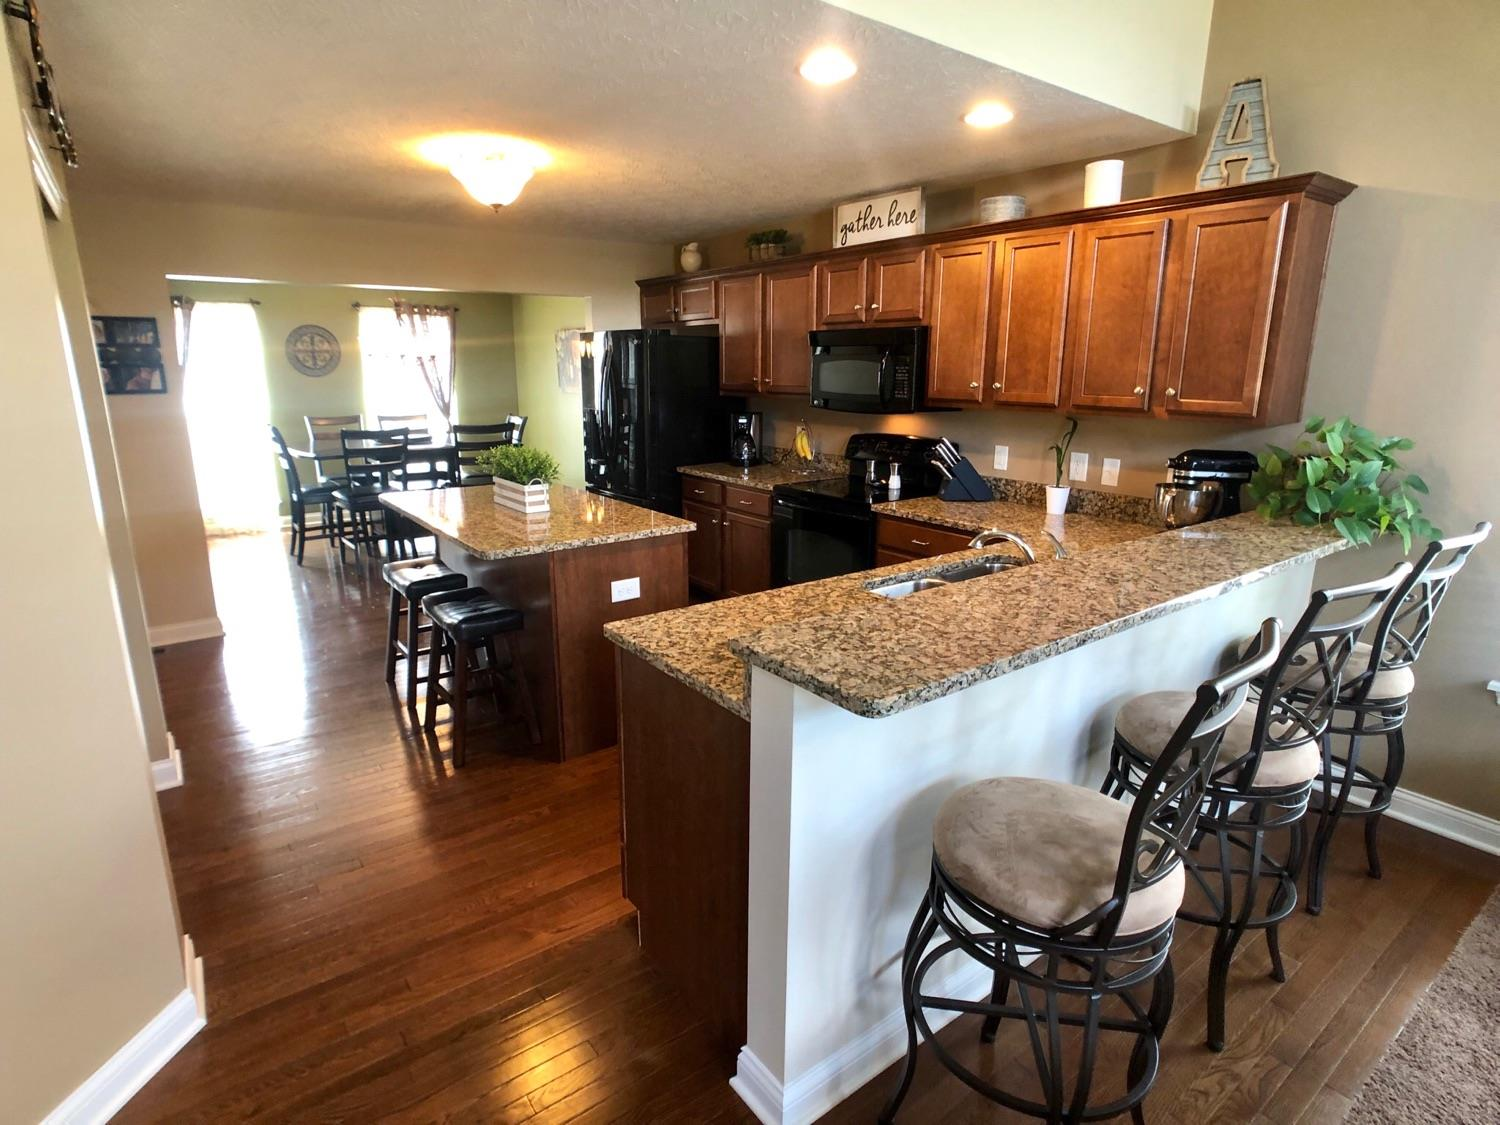 Photo 3 for 8849 Coronet Ct Whitewater Twp., OH 45002